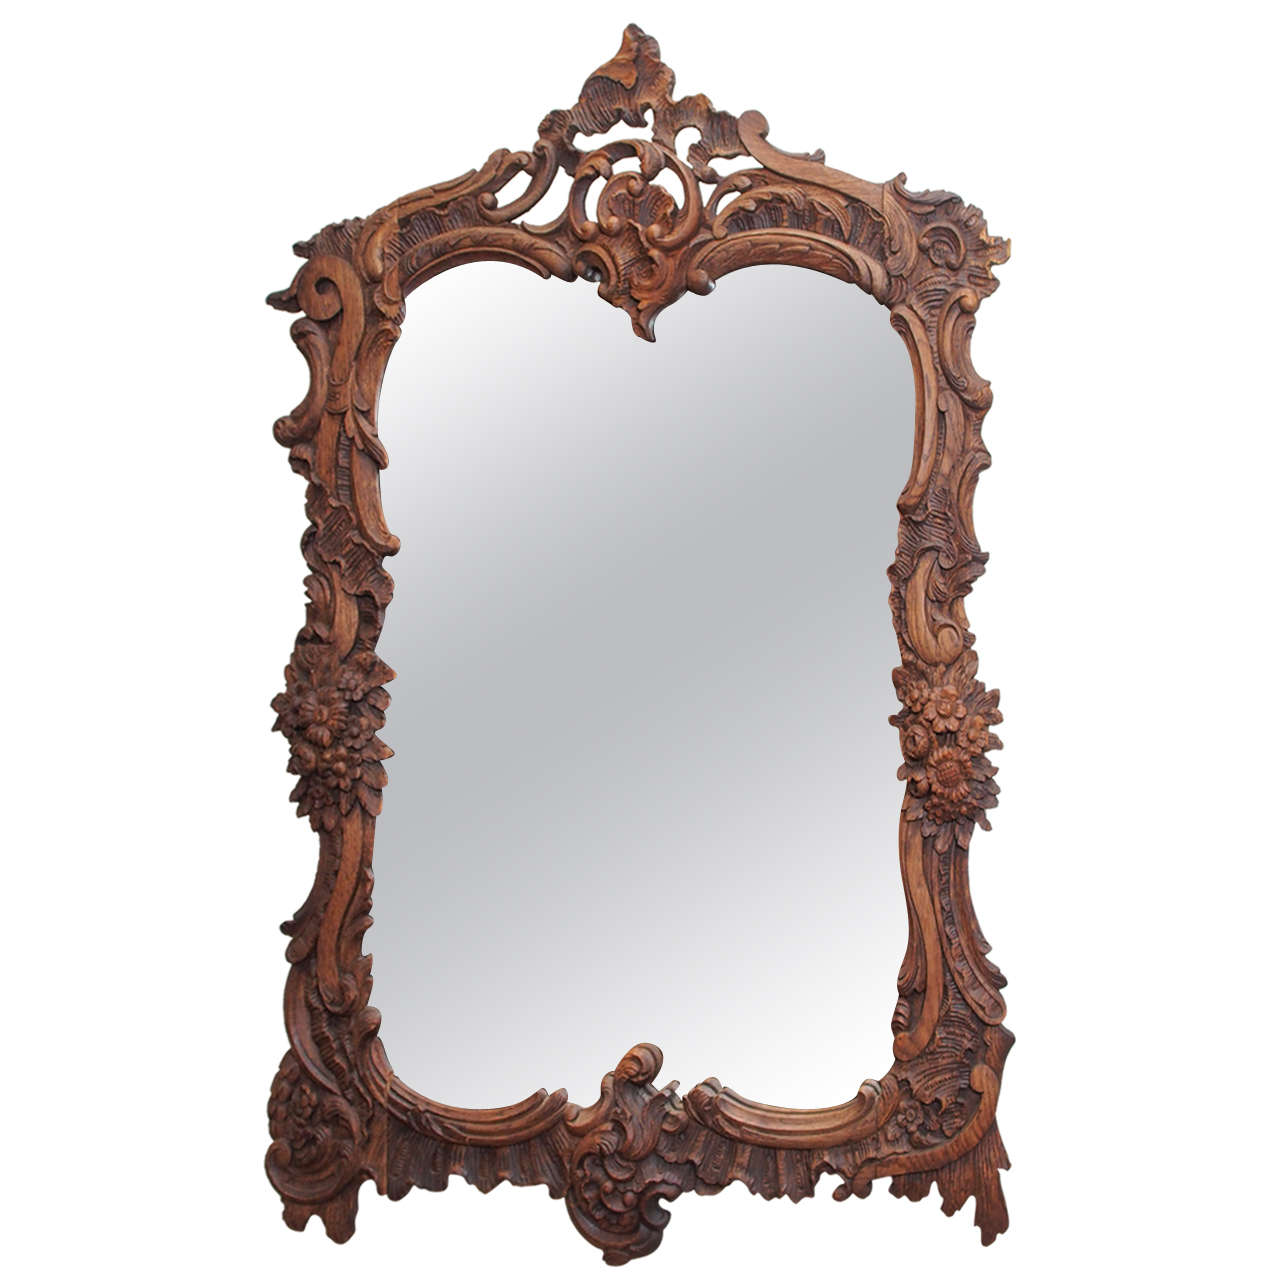 Antique french bois naturel carved chestnut mirror at 1stdibs for Antique french mirror